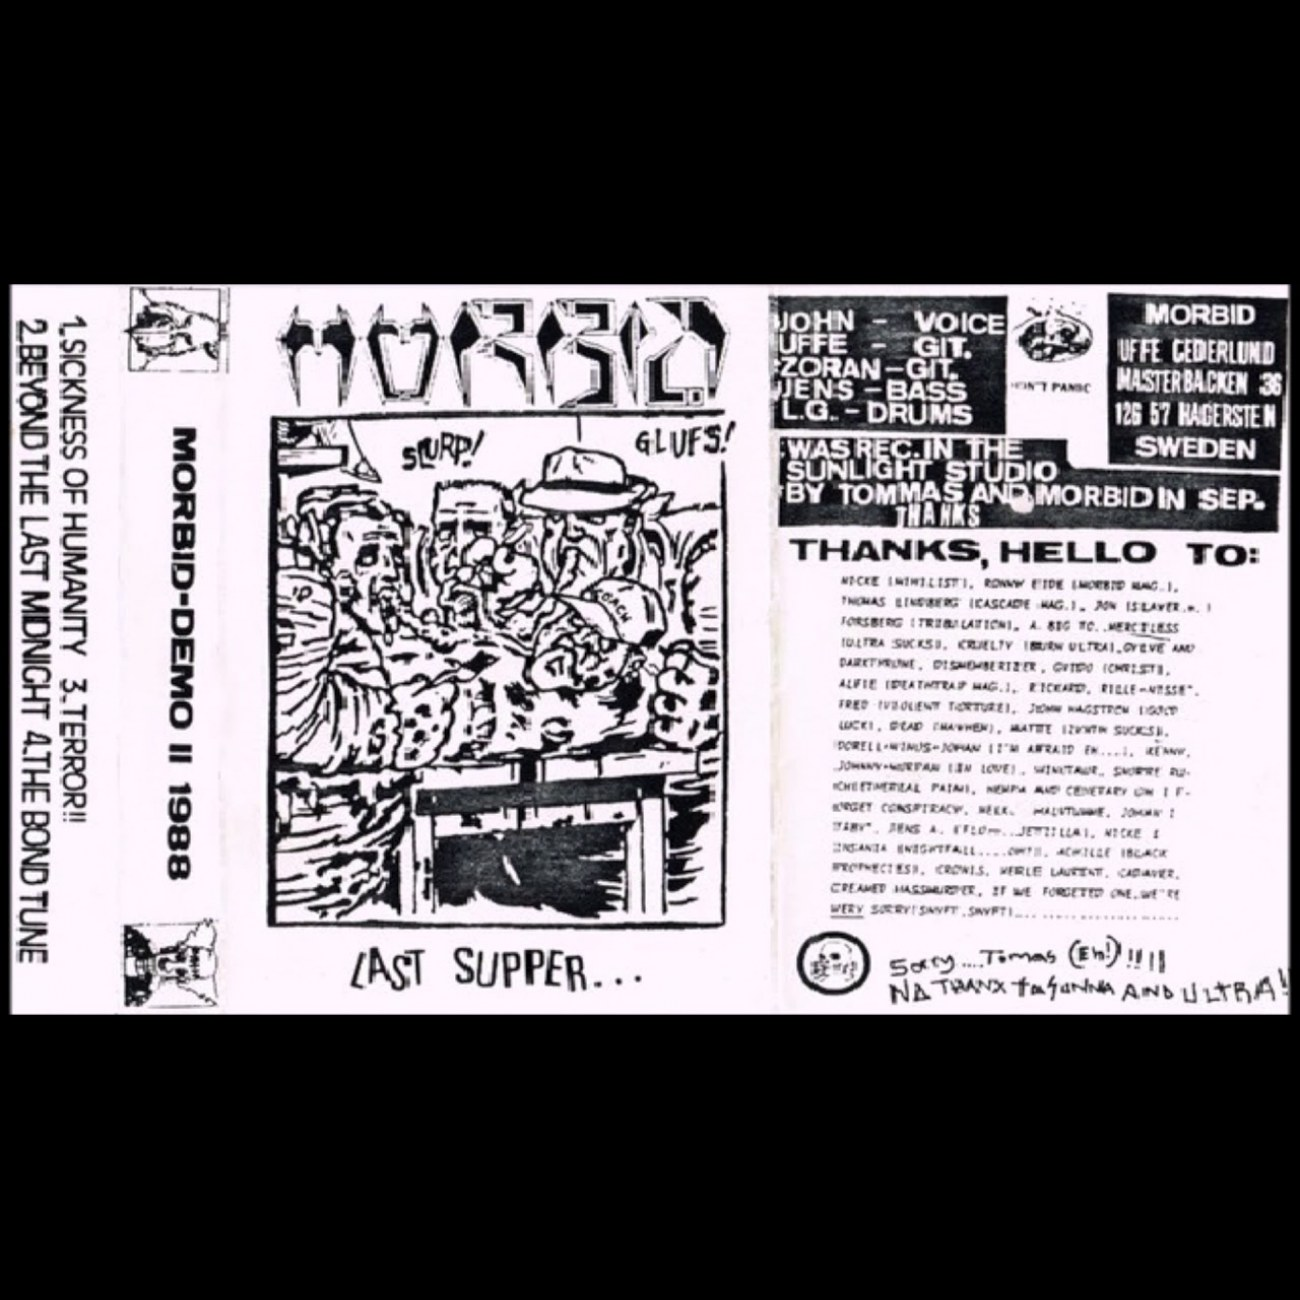 Reviews for Morbid (SWE) - Last Supper...